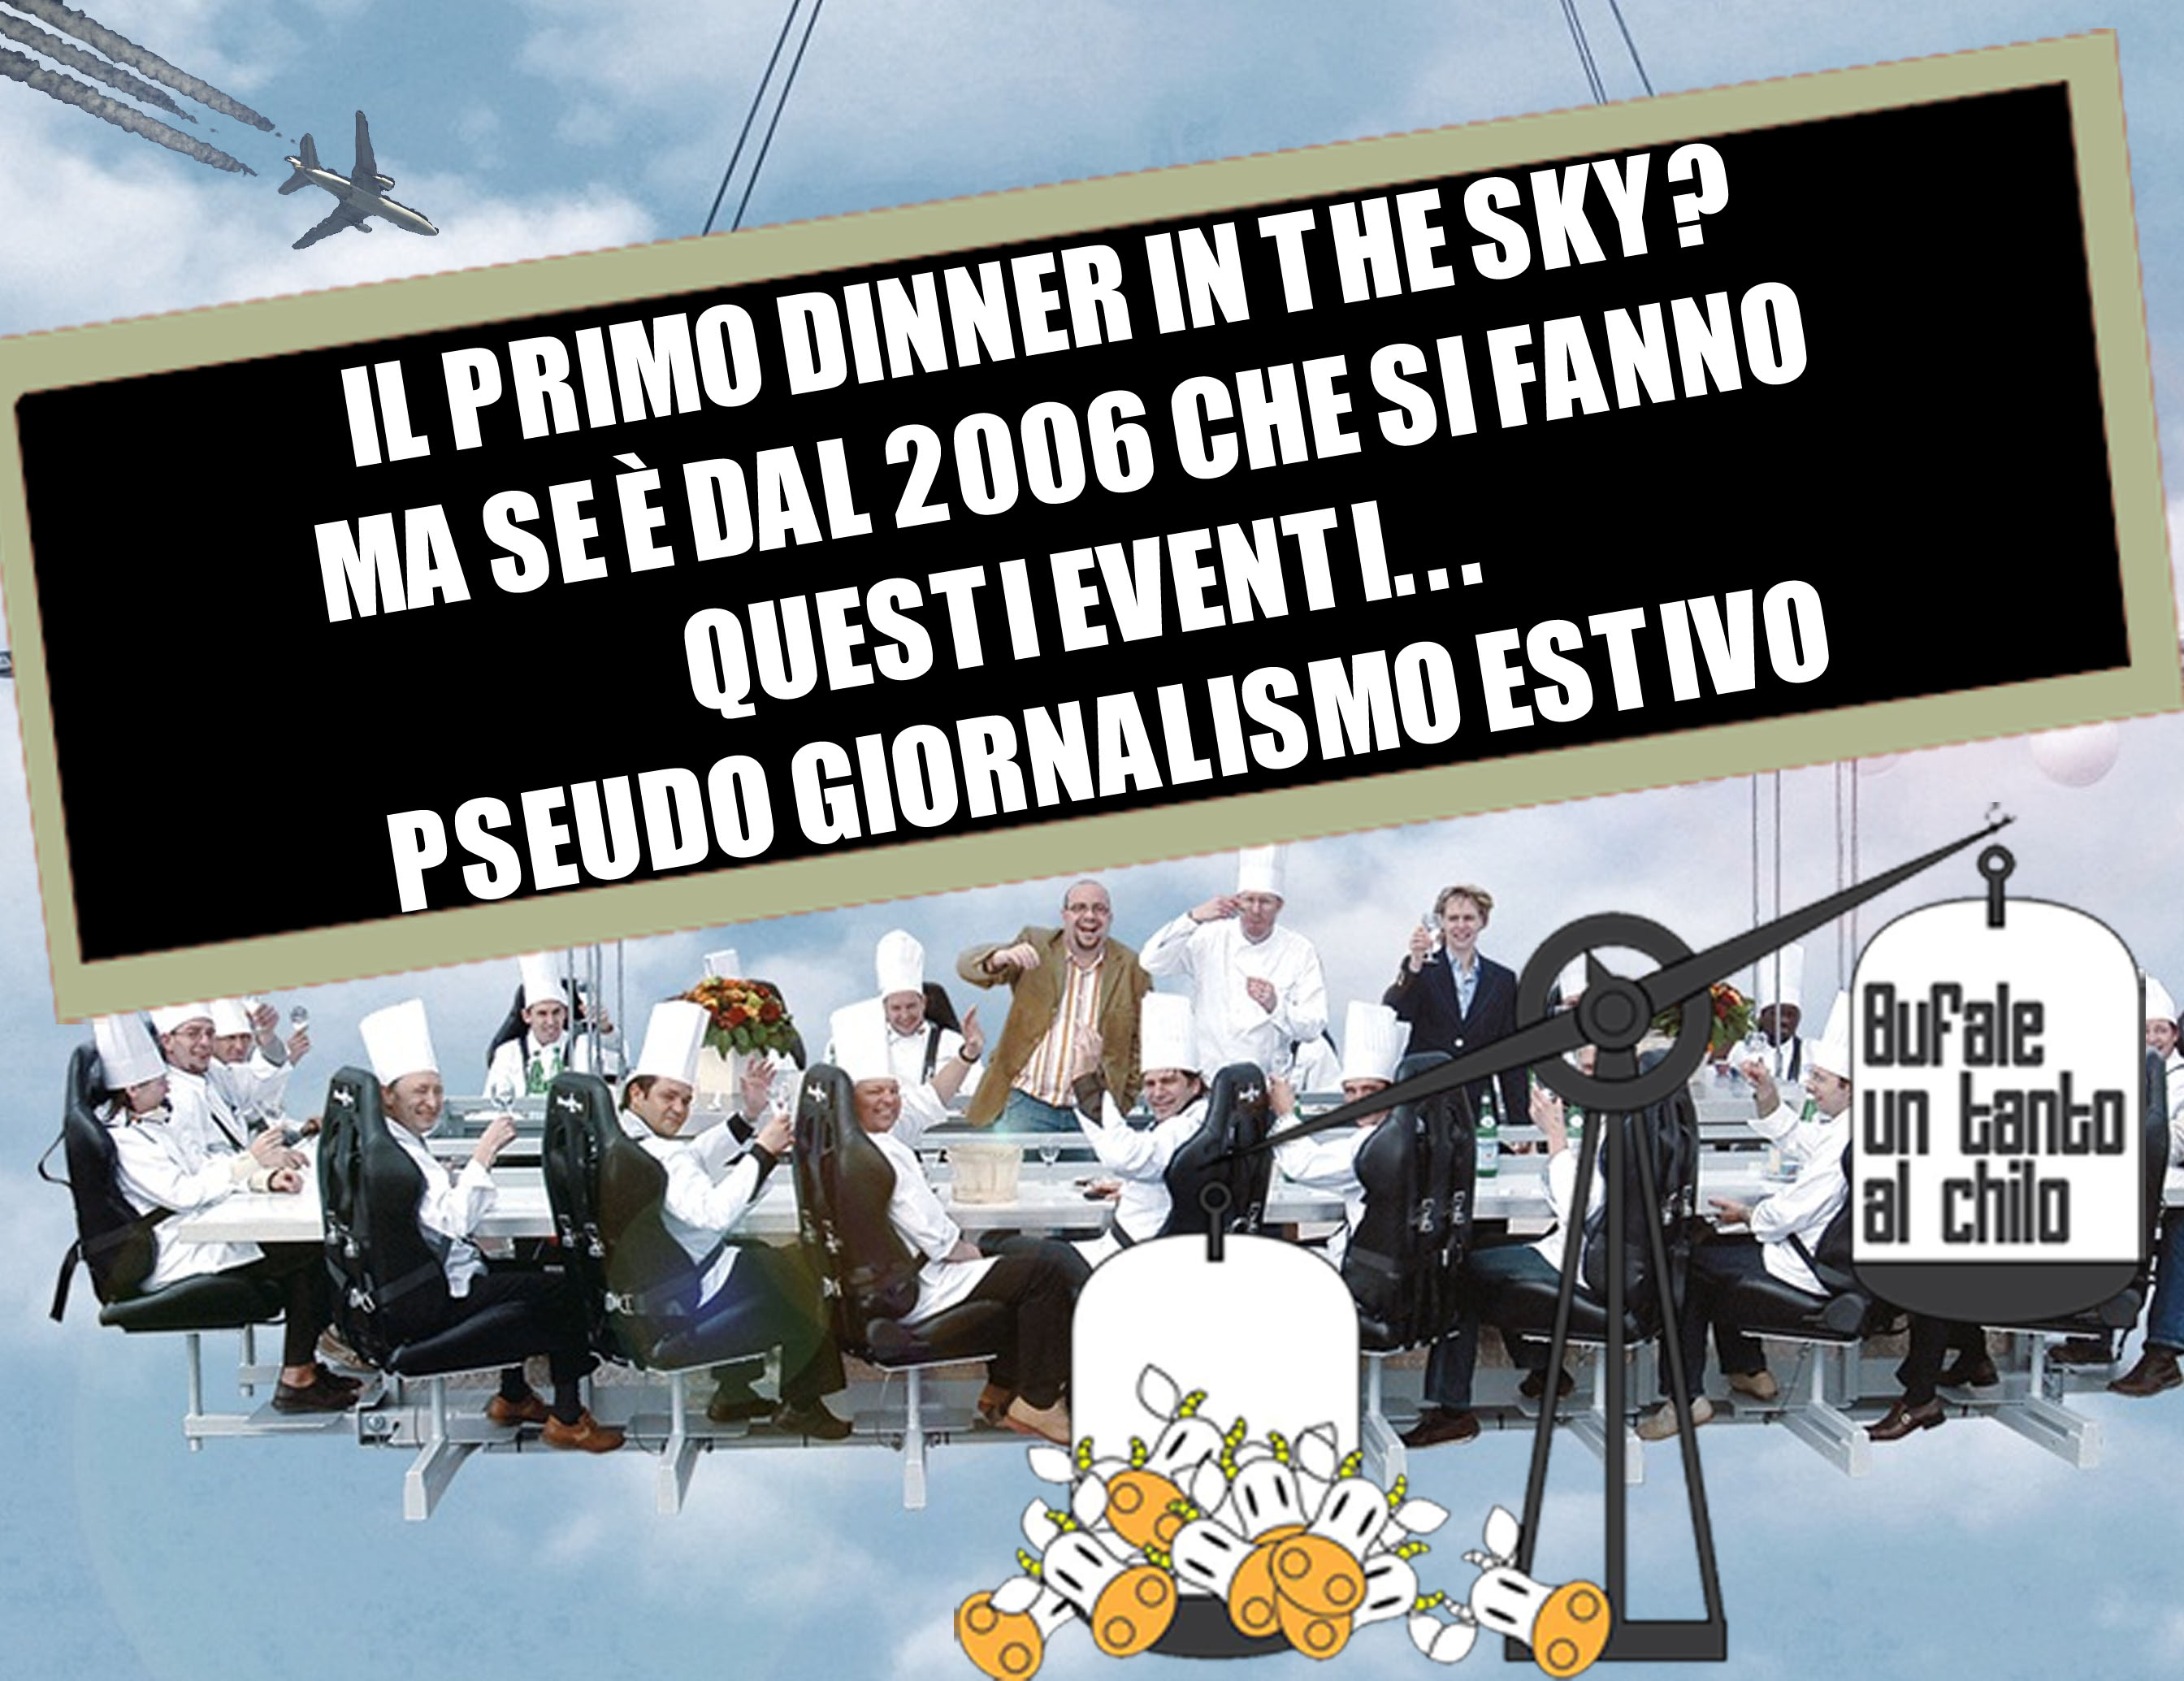 dinnersky-withchemtrails